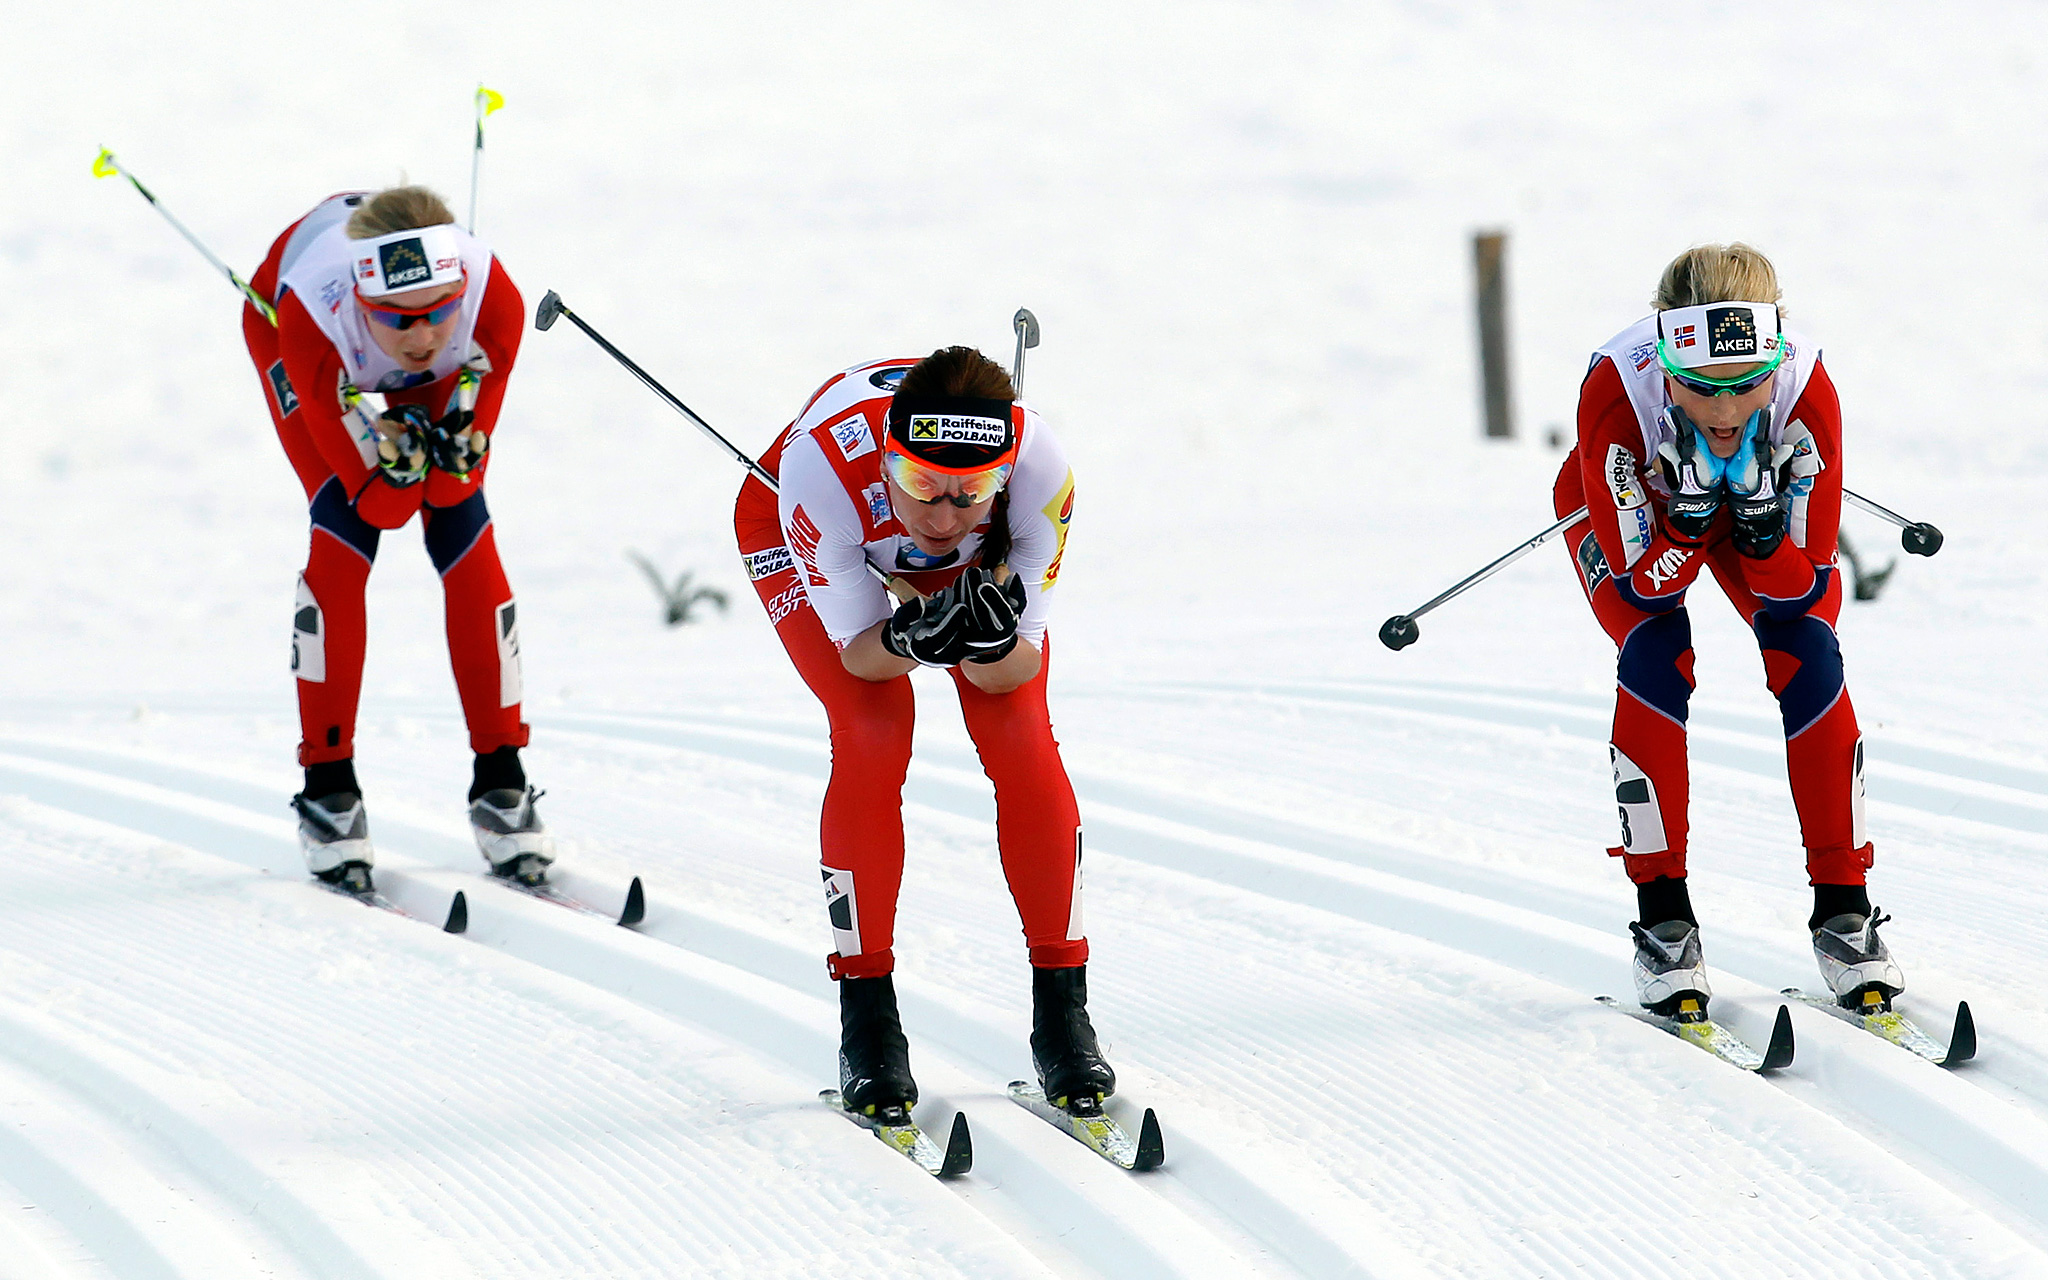 World Cup cross-country skiing 10km